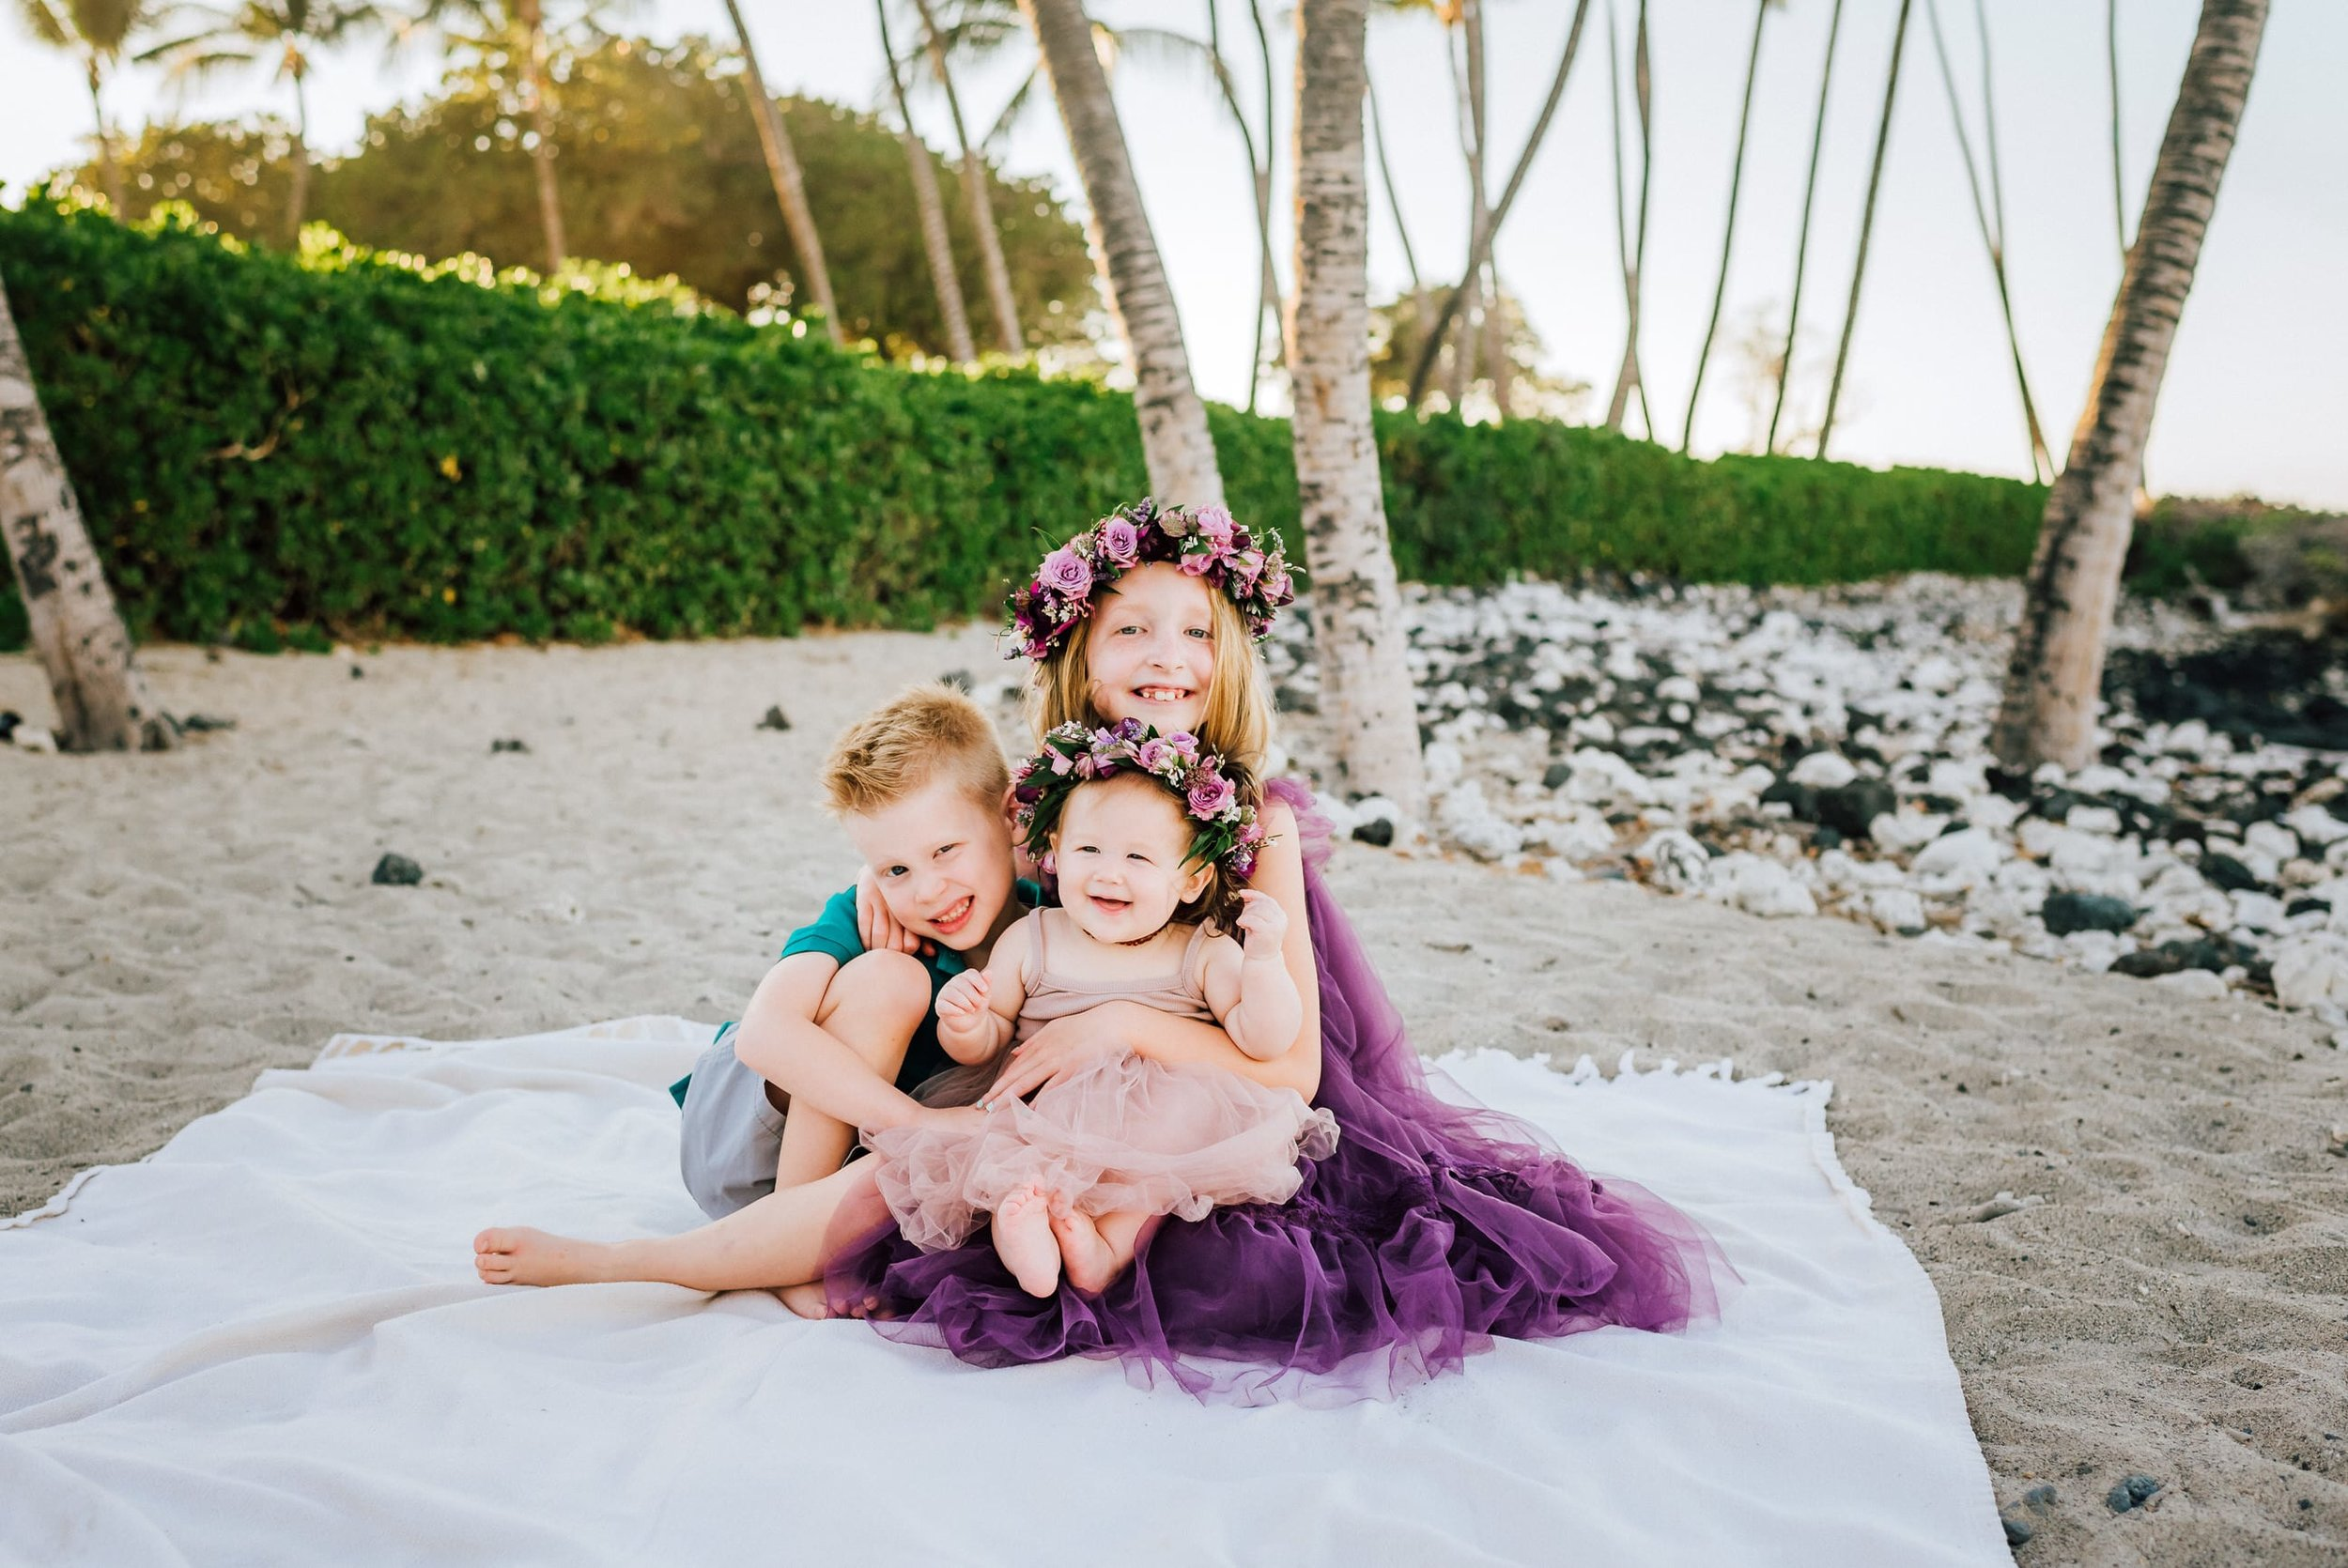 Big-Island-Photographers-Waikoloa-Family-Photos6.jpg